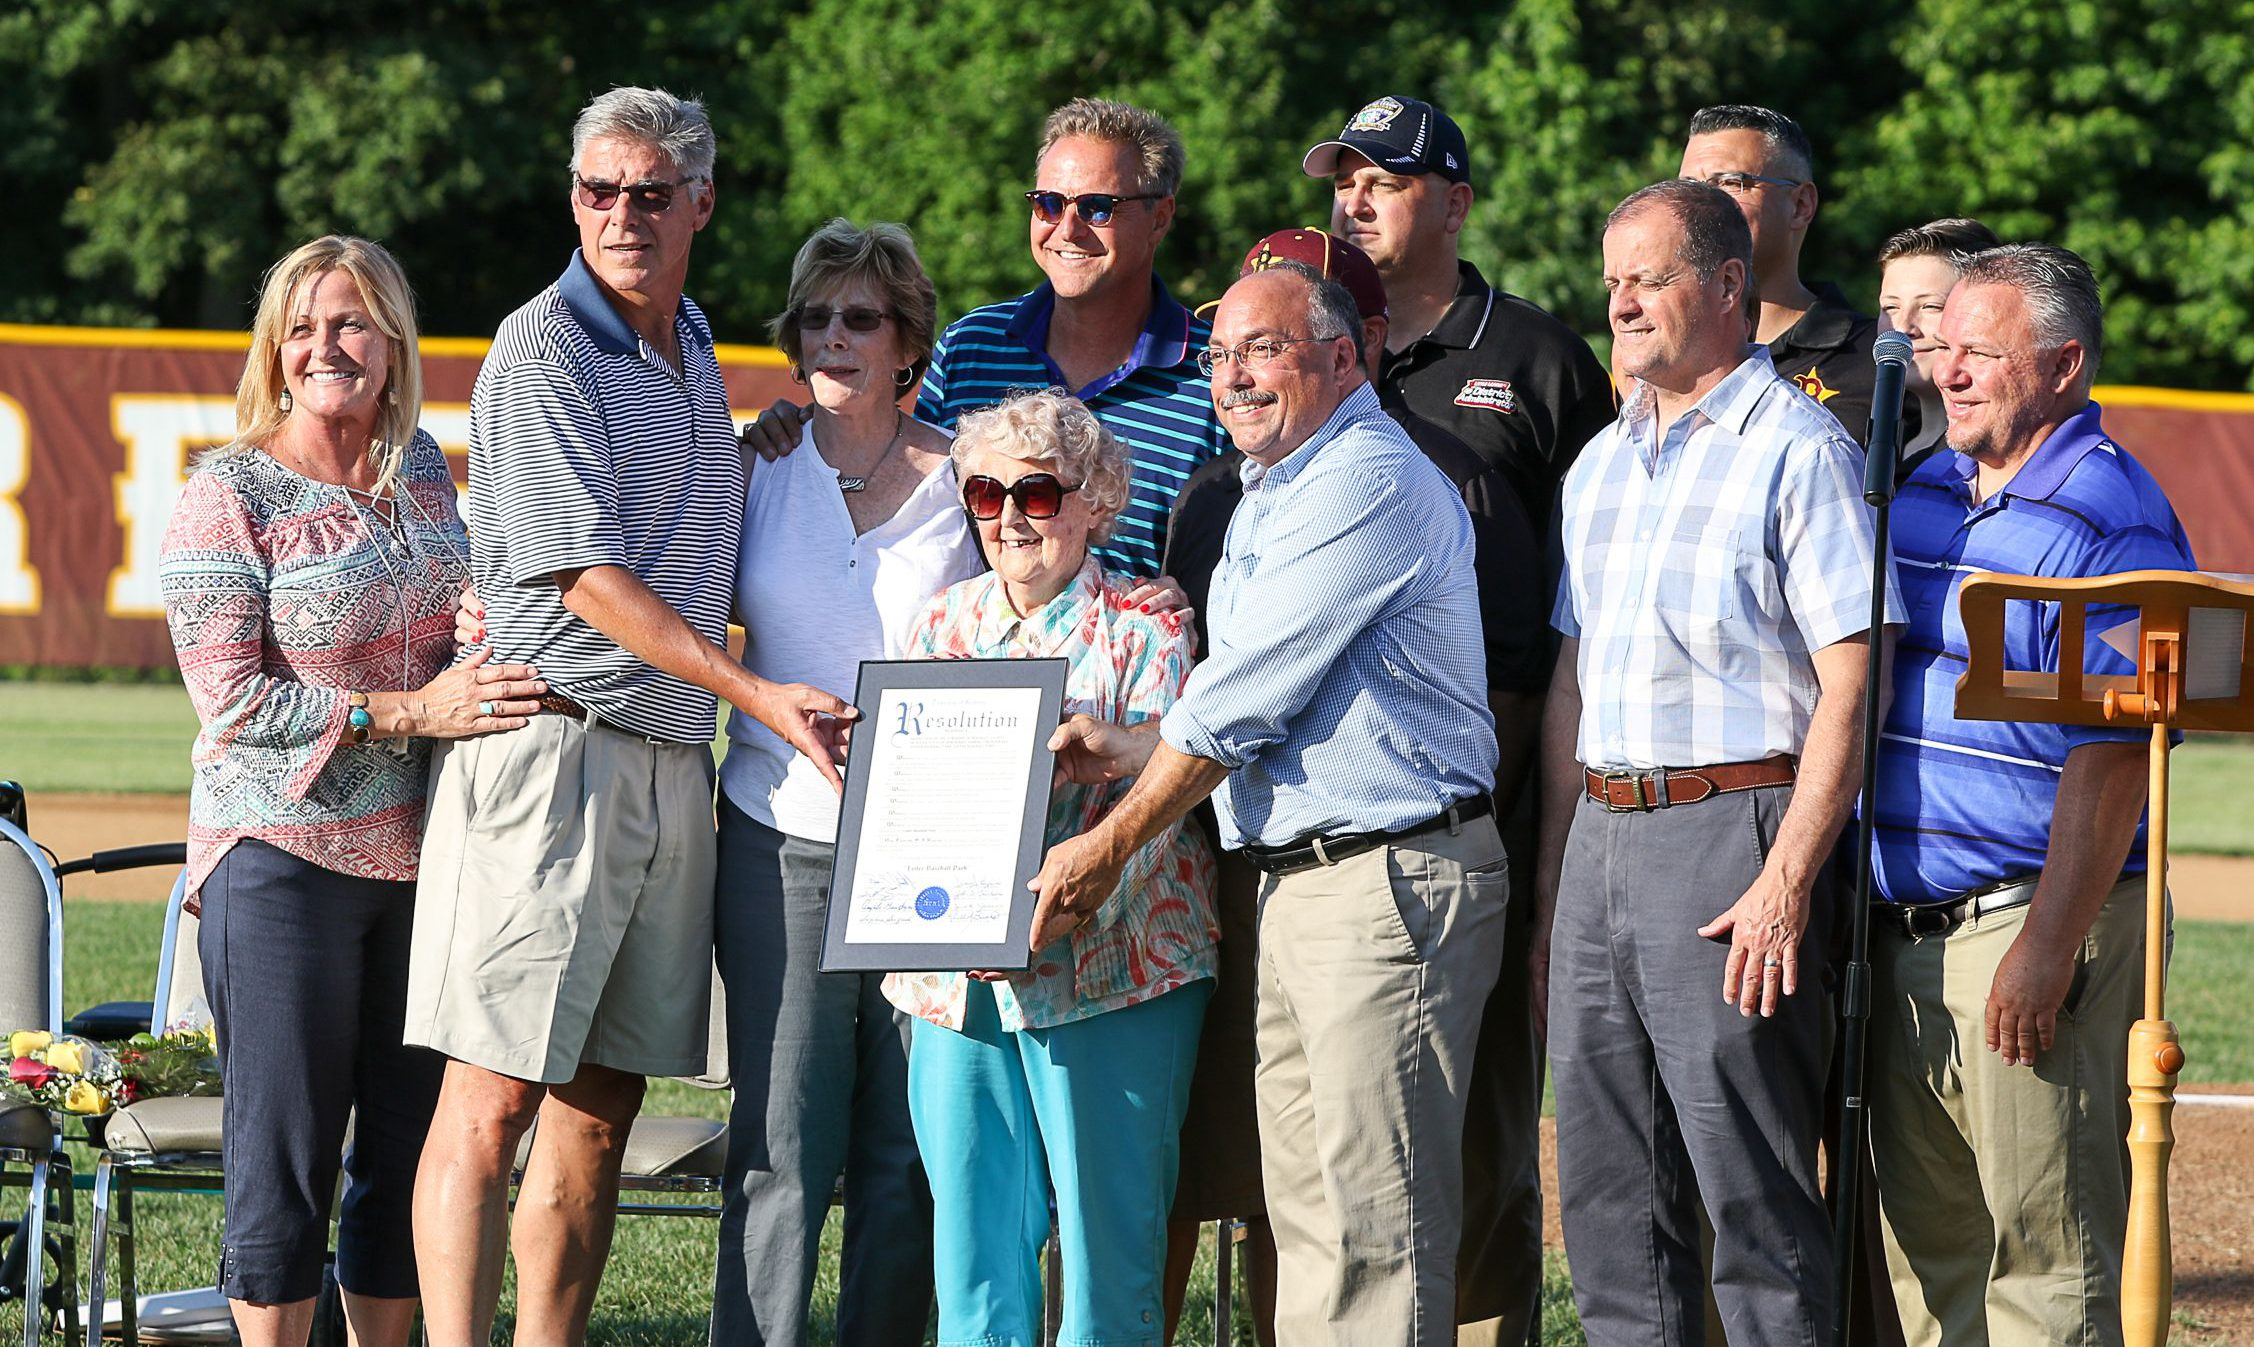 New Jersey Little League park named after Al Leiter and family